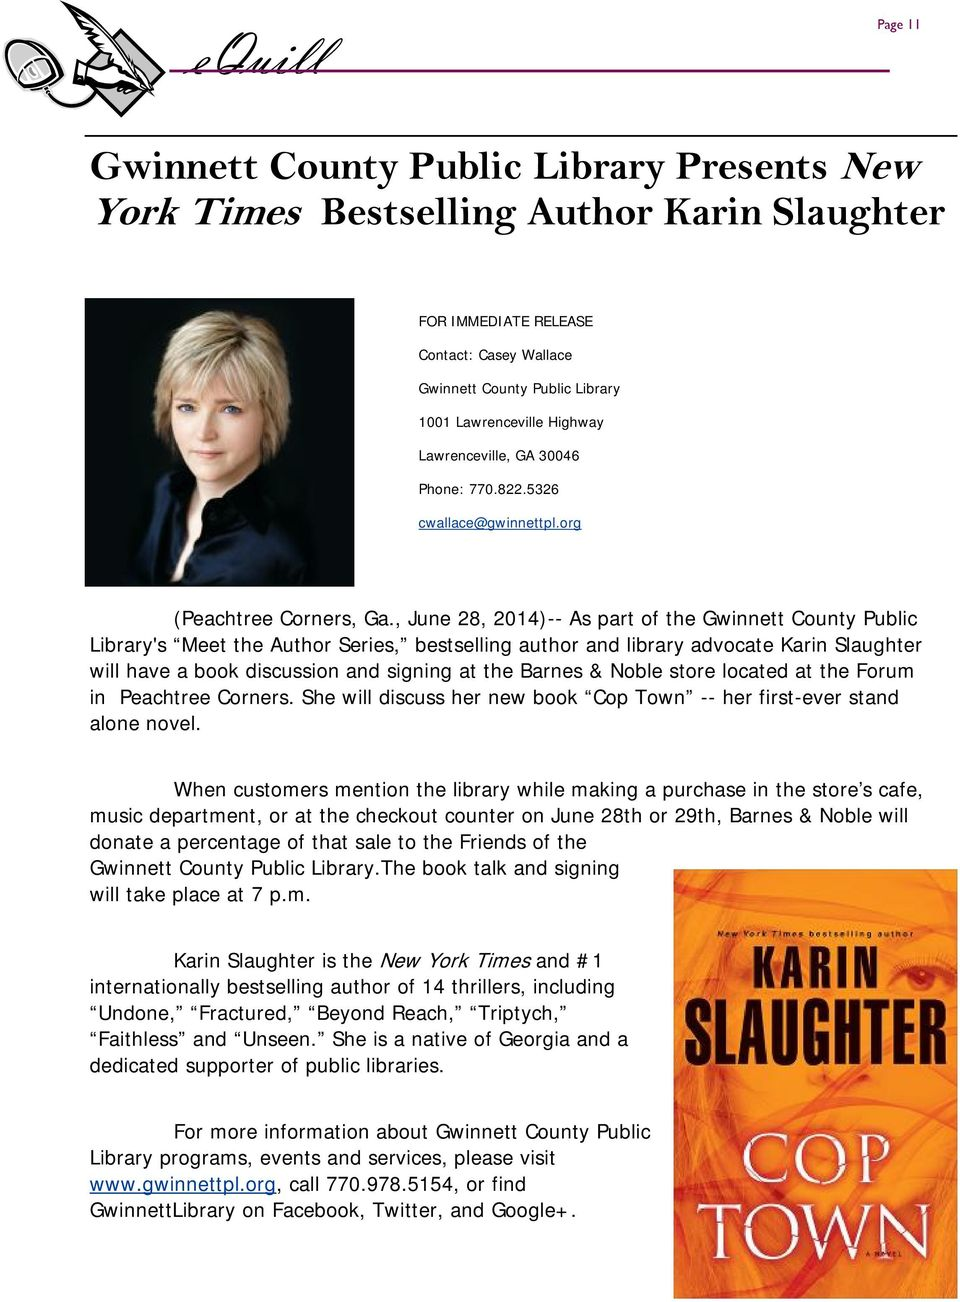 , June 28, 2014)-- As part of the Gwinnett County Public Library's Meet the Author Series, bestselling author and library advocate Karin Slaughter will have a book discussion and signing at the